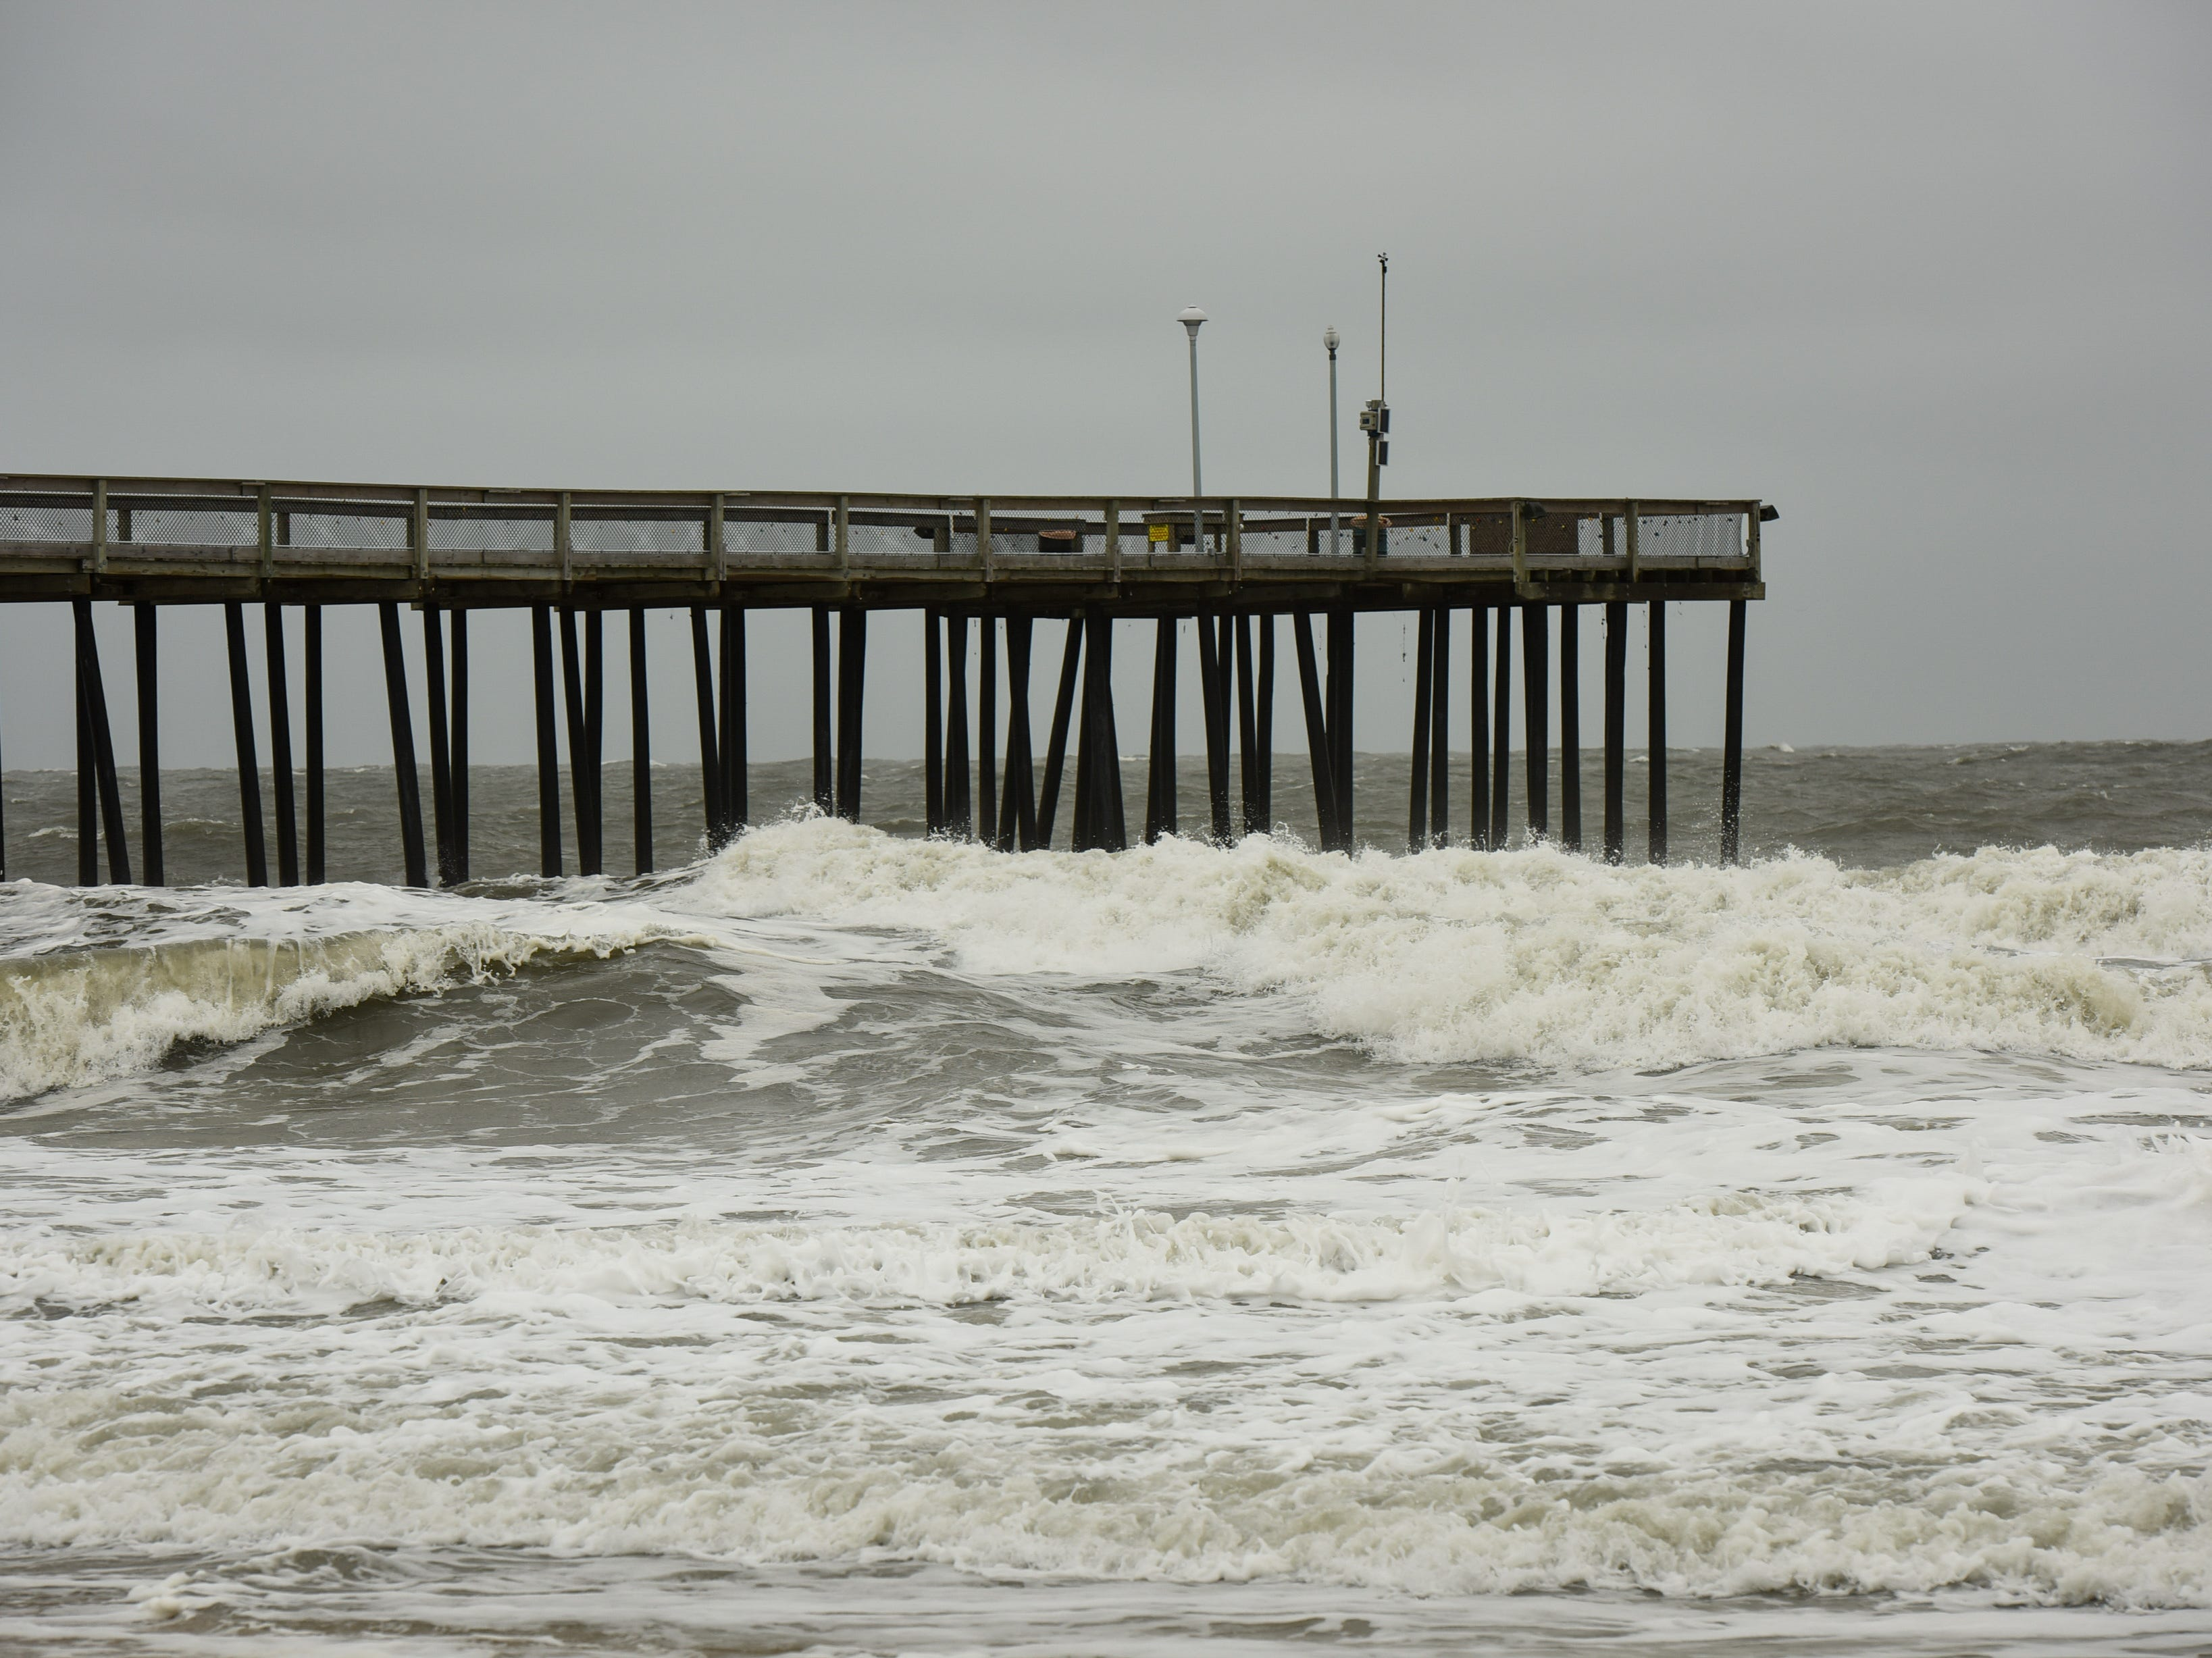 Stormy seas at inlet beach in Ocean City, Maryland on Monday, Sept. 10.